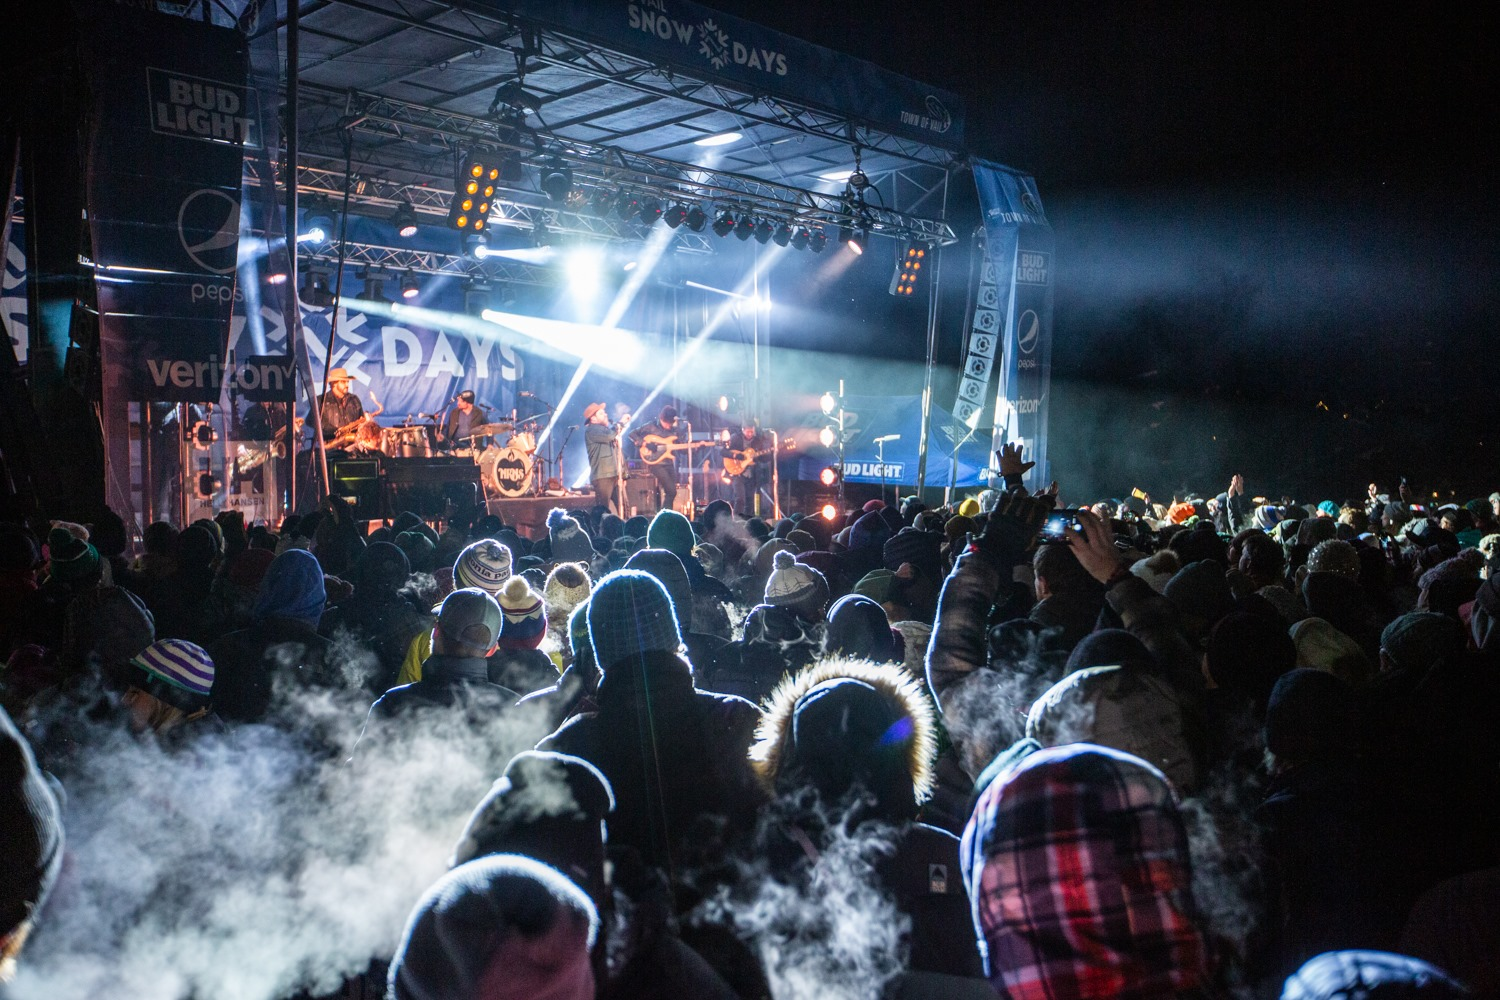 Image of people at the stage at Vail Snow Days in Colorado